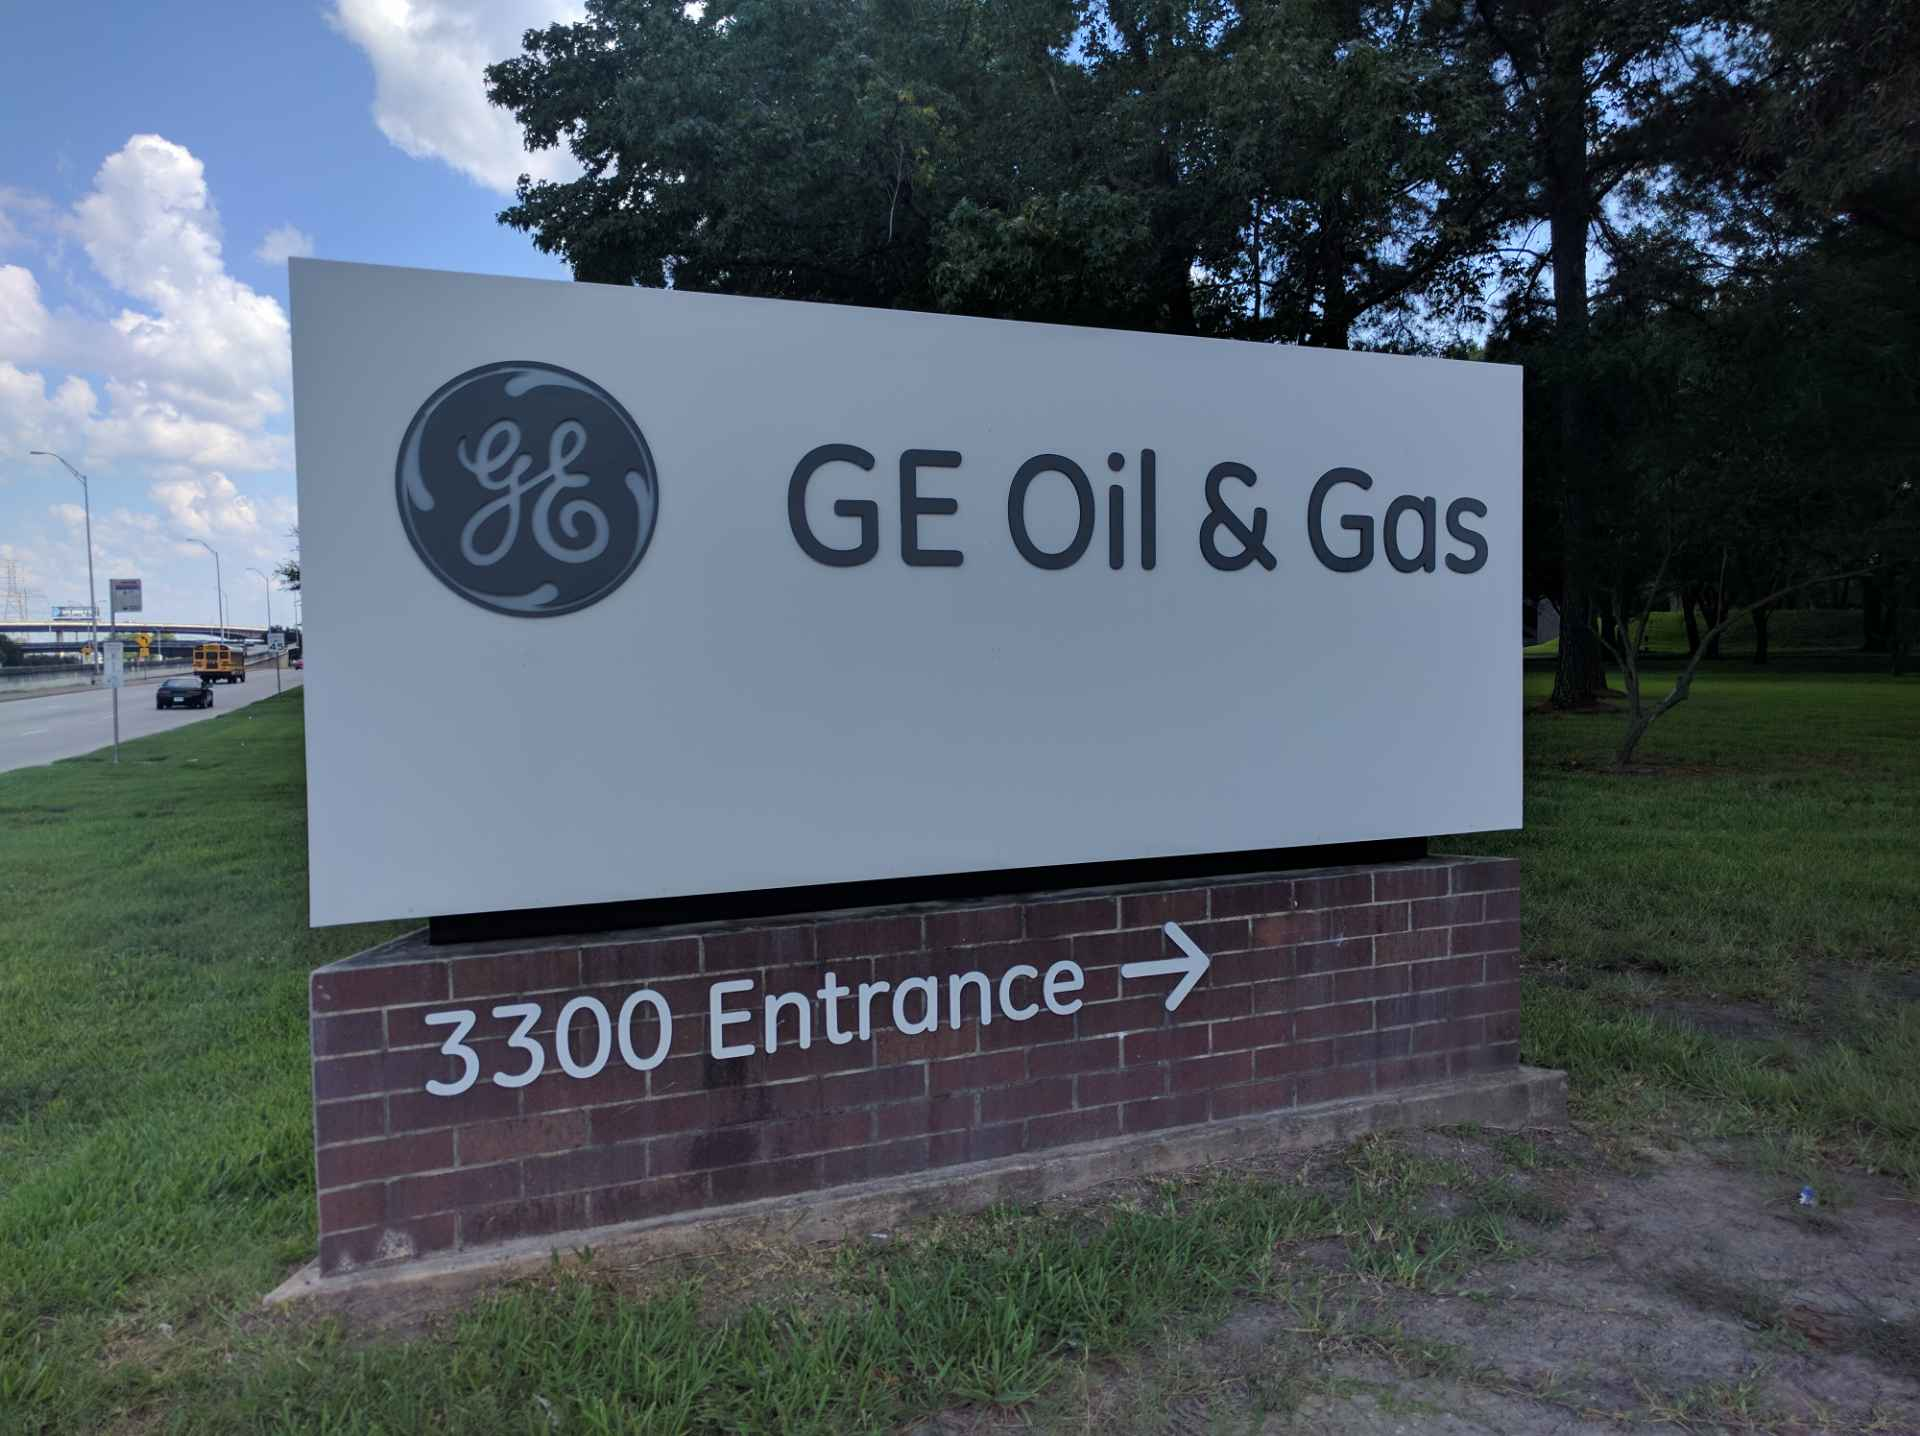 Entrance to GE Oil & Gas' corporate headquarters in Houston, Texas.